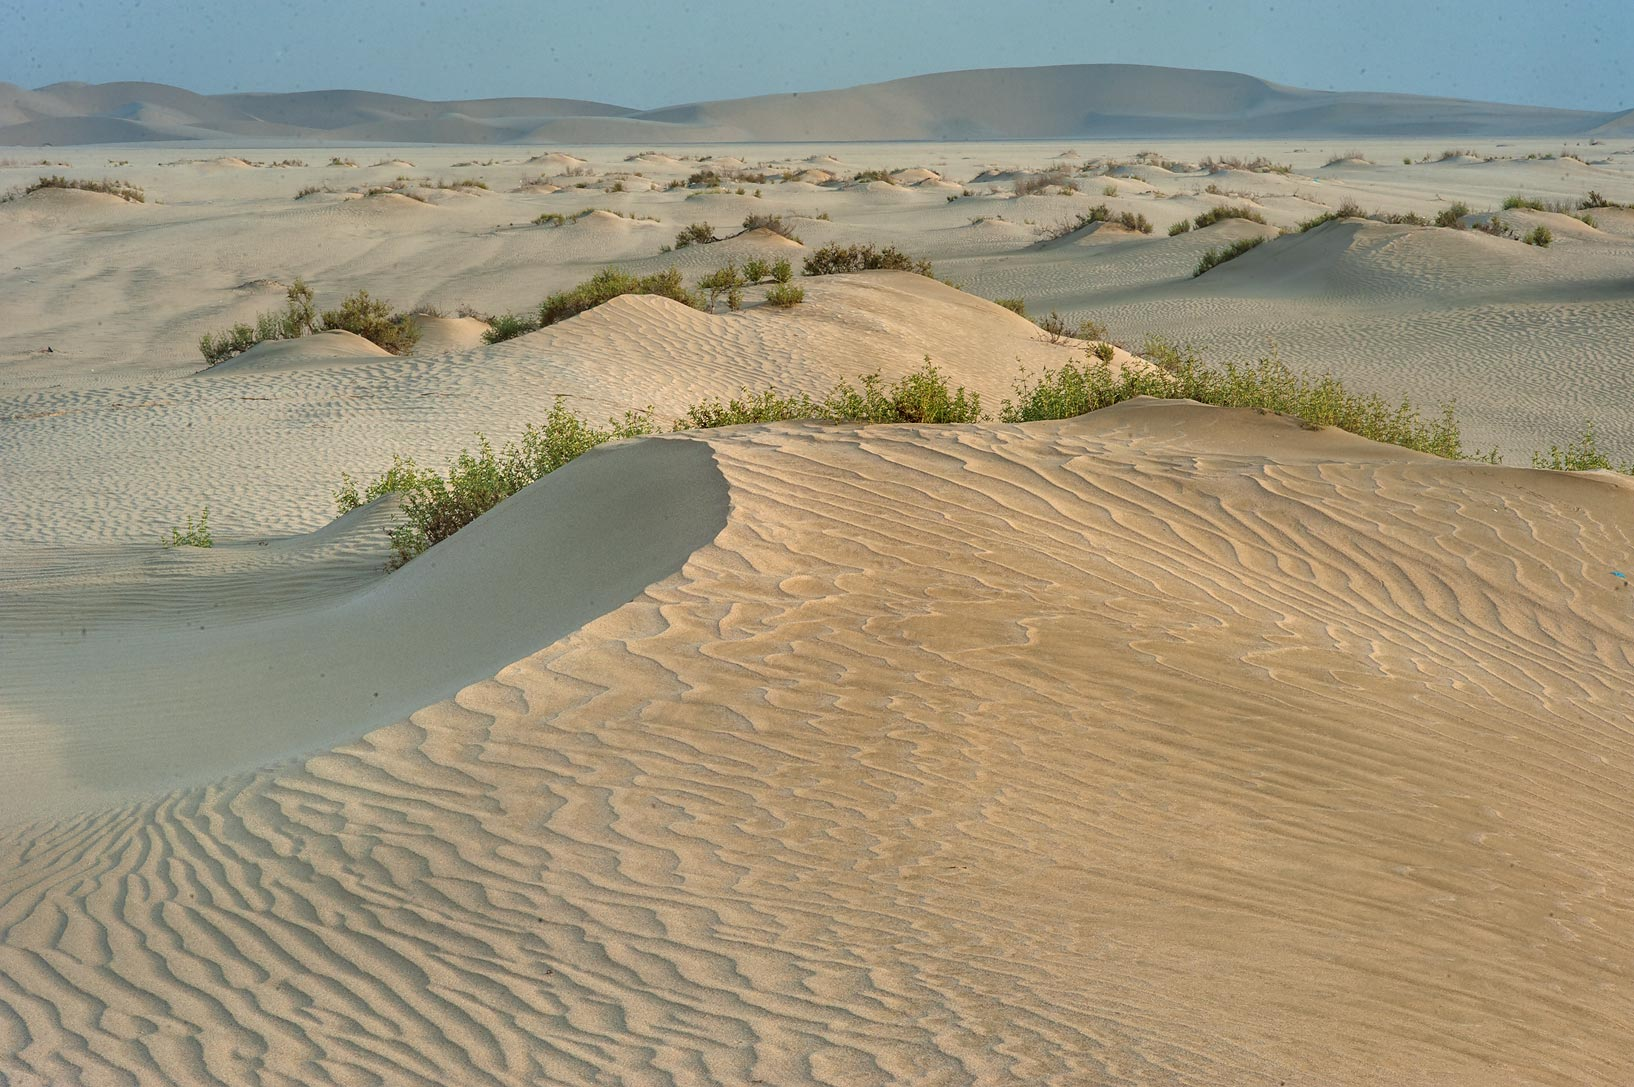 Sand mounds near Sealine Beach Resort near Mesaieed, view to north-west. Southern Qatar